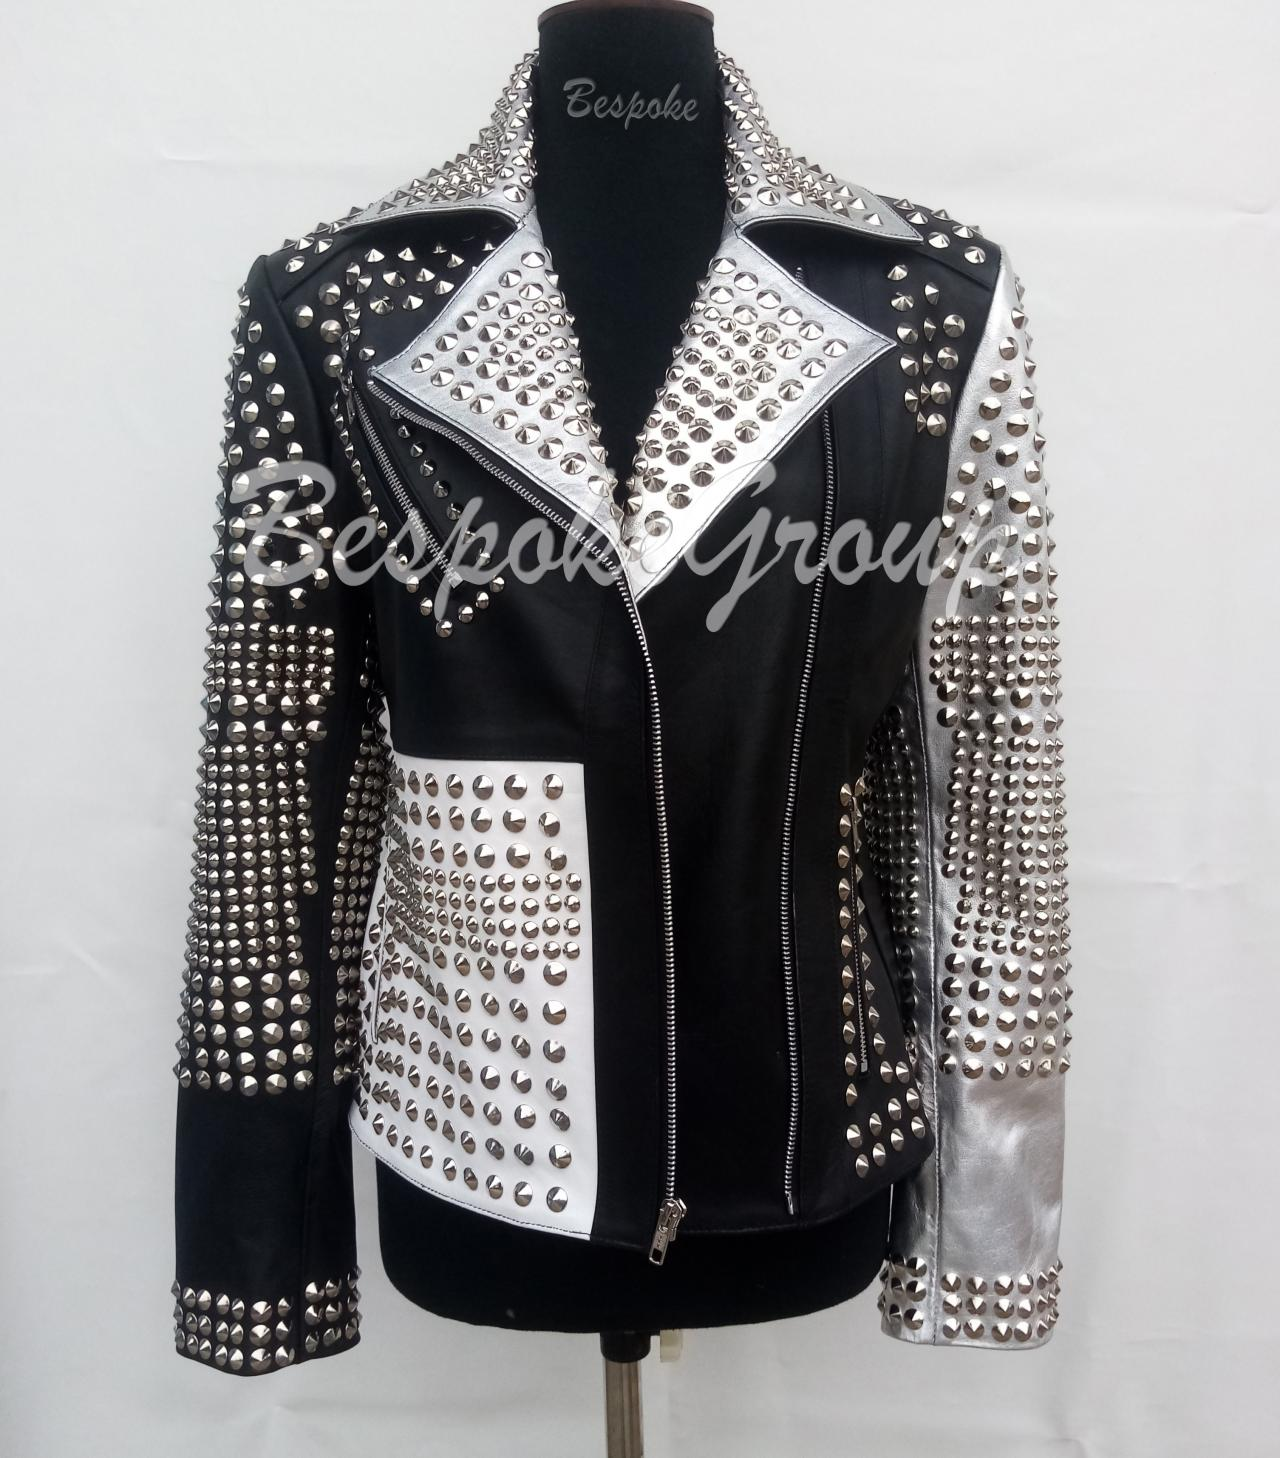 New Handmade Women Silver Black Punk Rock Multi Color Studded Brando Stem Punk Cowhide Biker Unique Style Leather Jacket-40